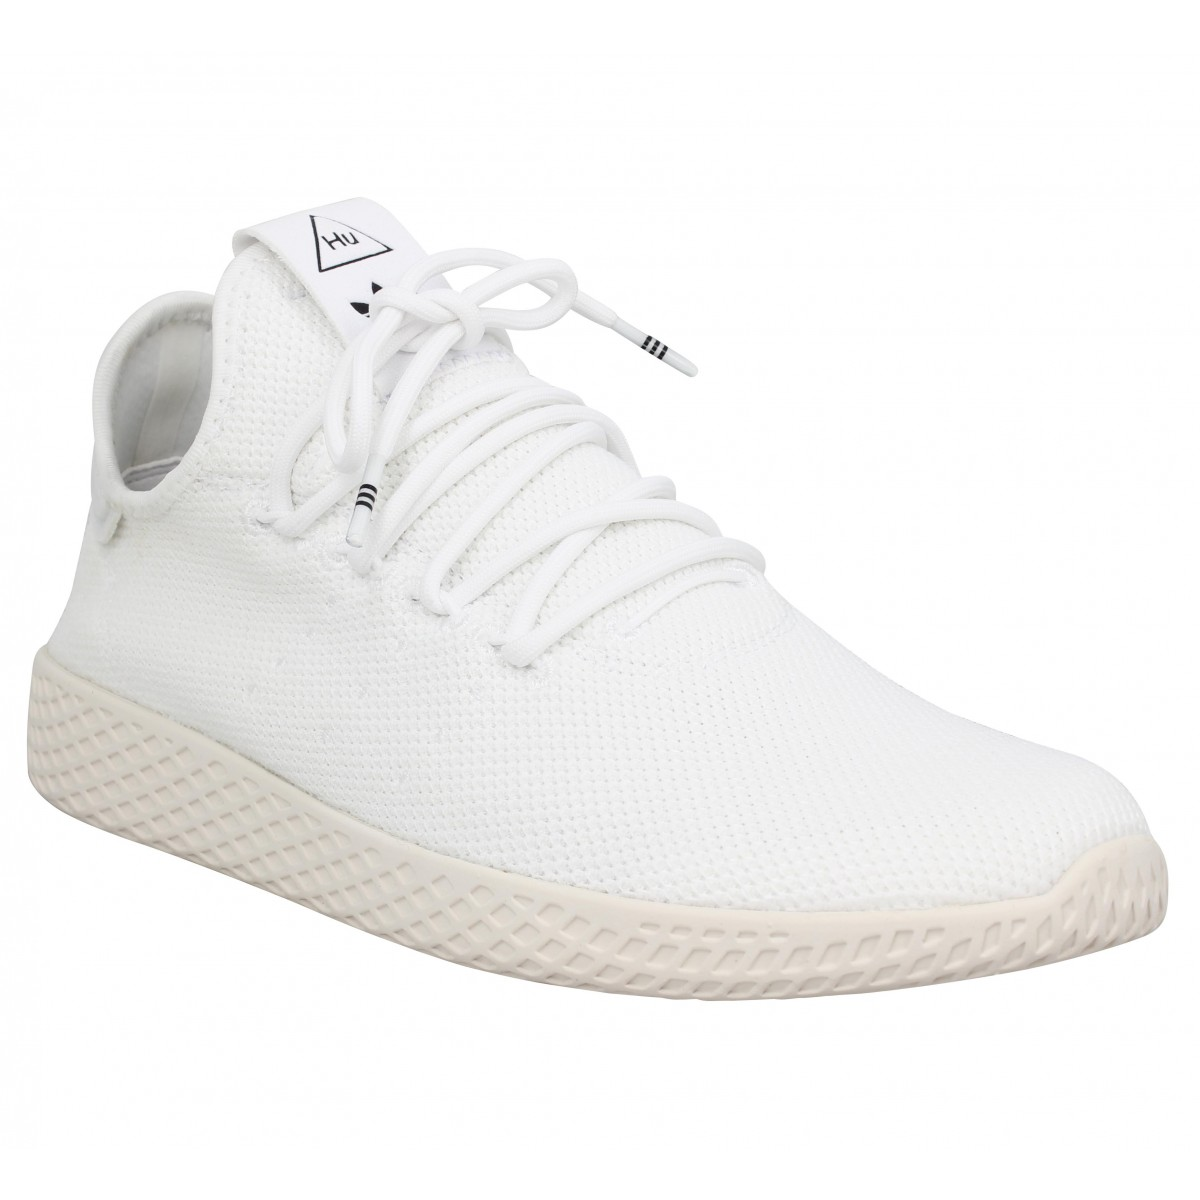 Tennis Williams BlancFanny Pw Mesh Homme Adidas X Pharrell xthBQrdCs